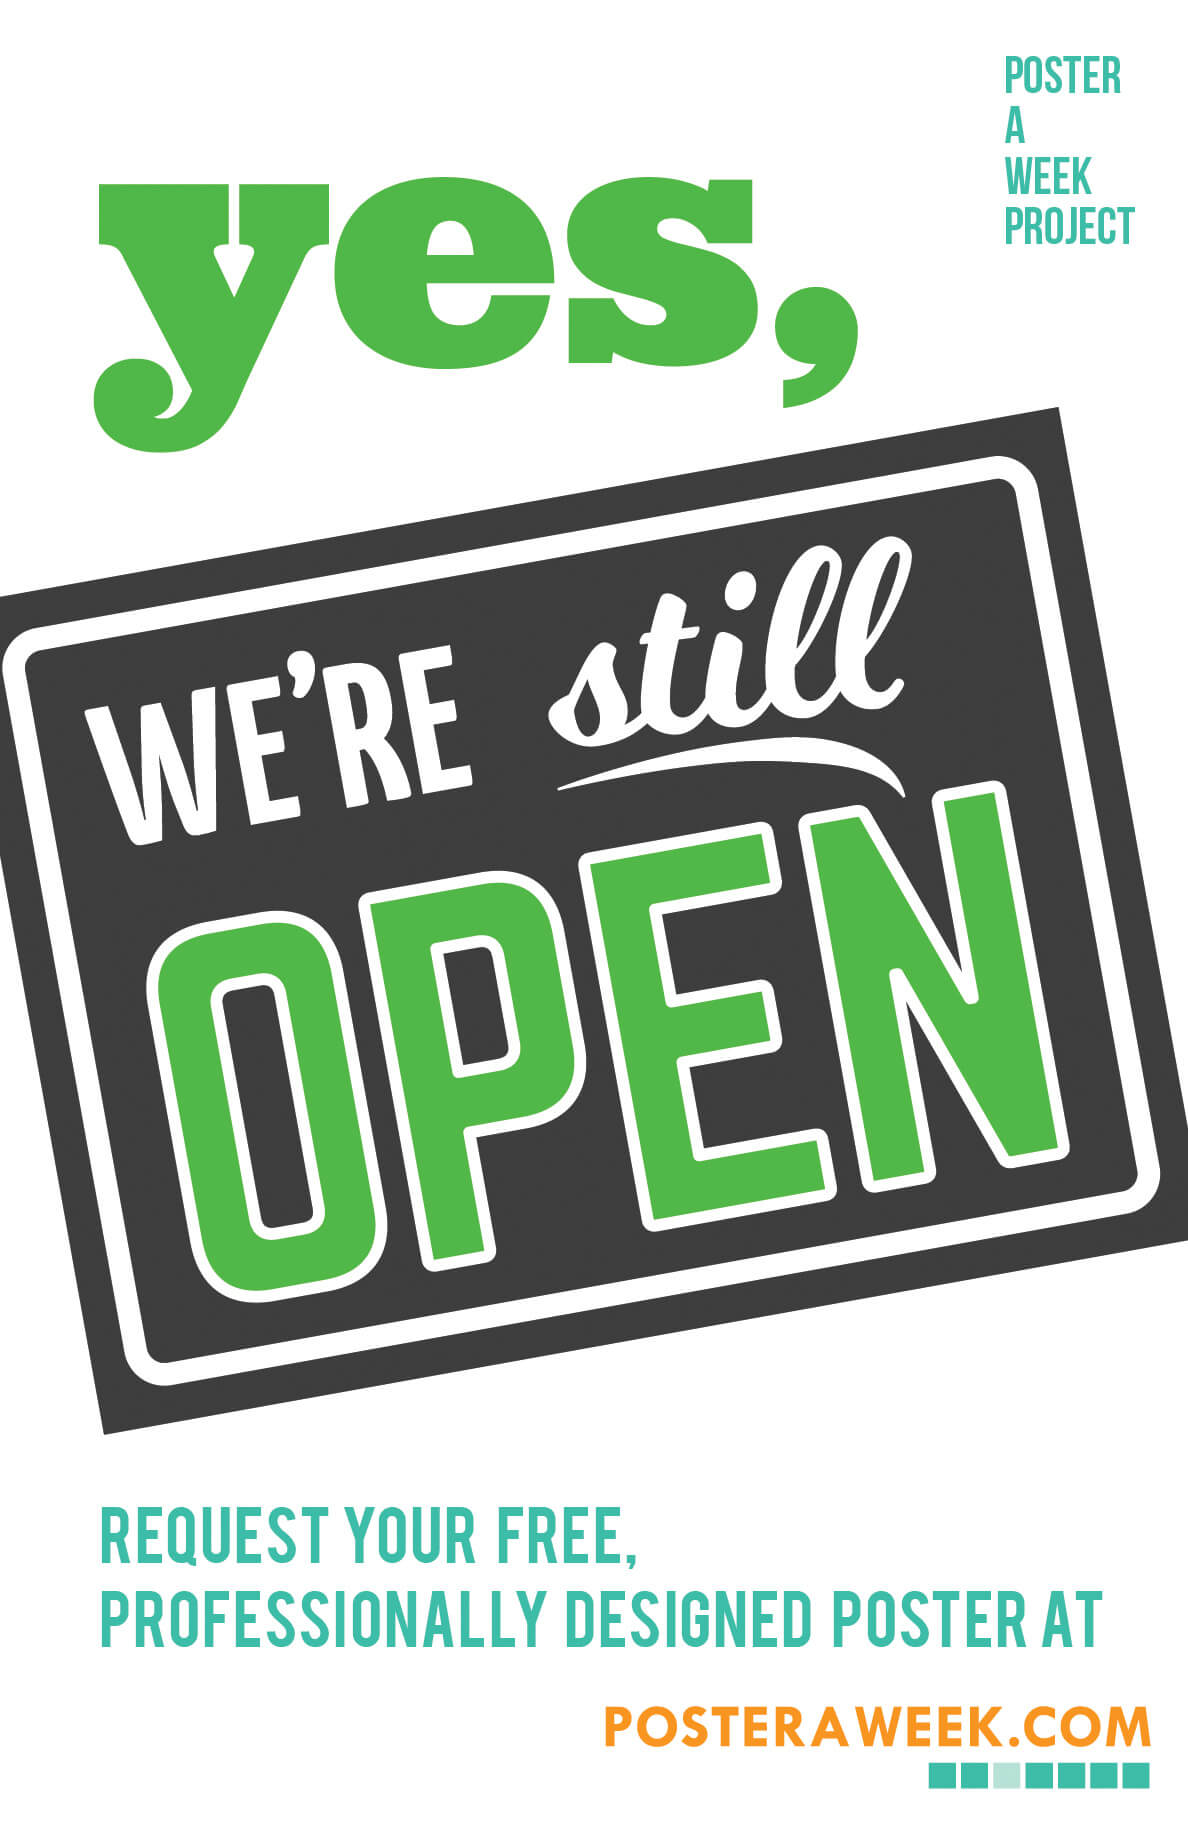 Poster a Week Free Posters Online - This Week: Yes, We're Still Open Poster